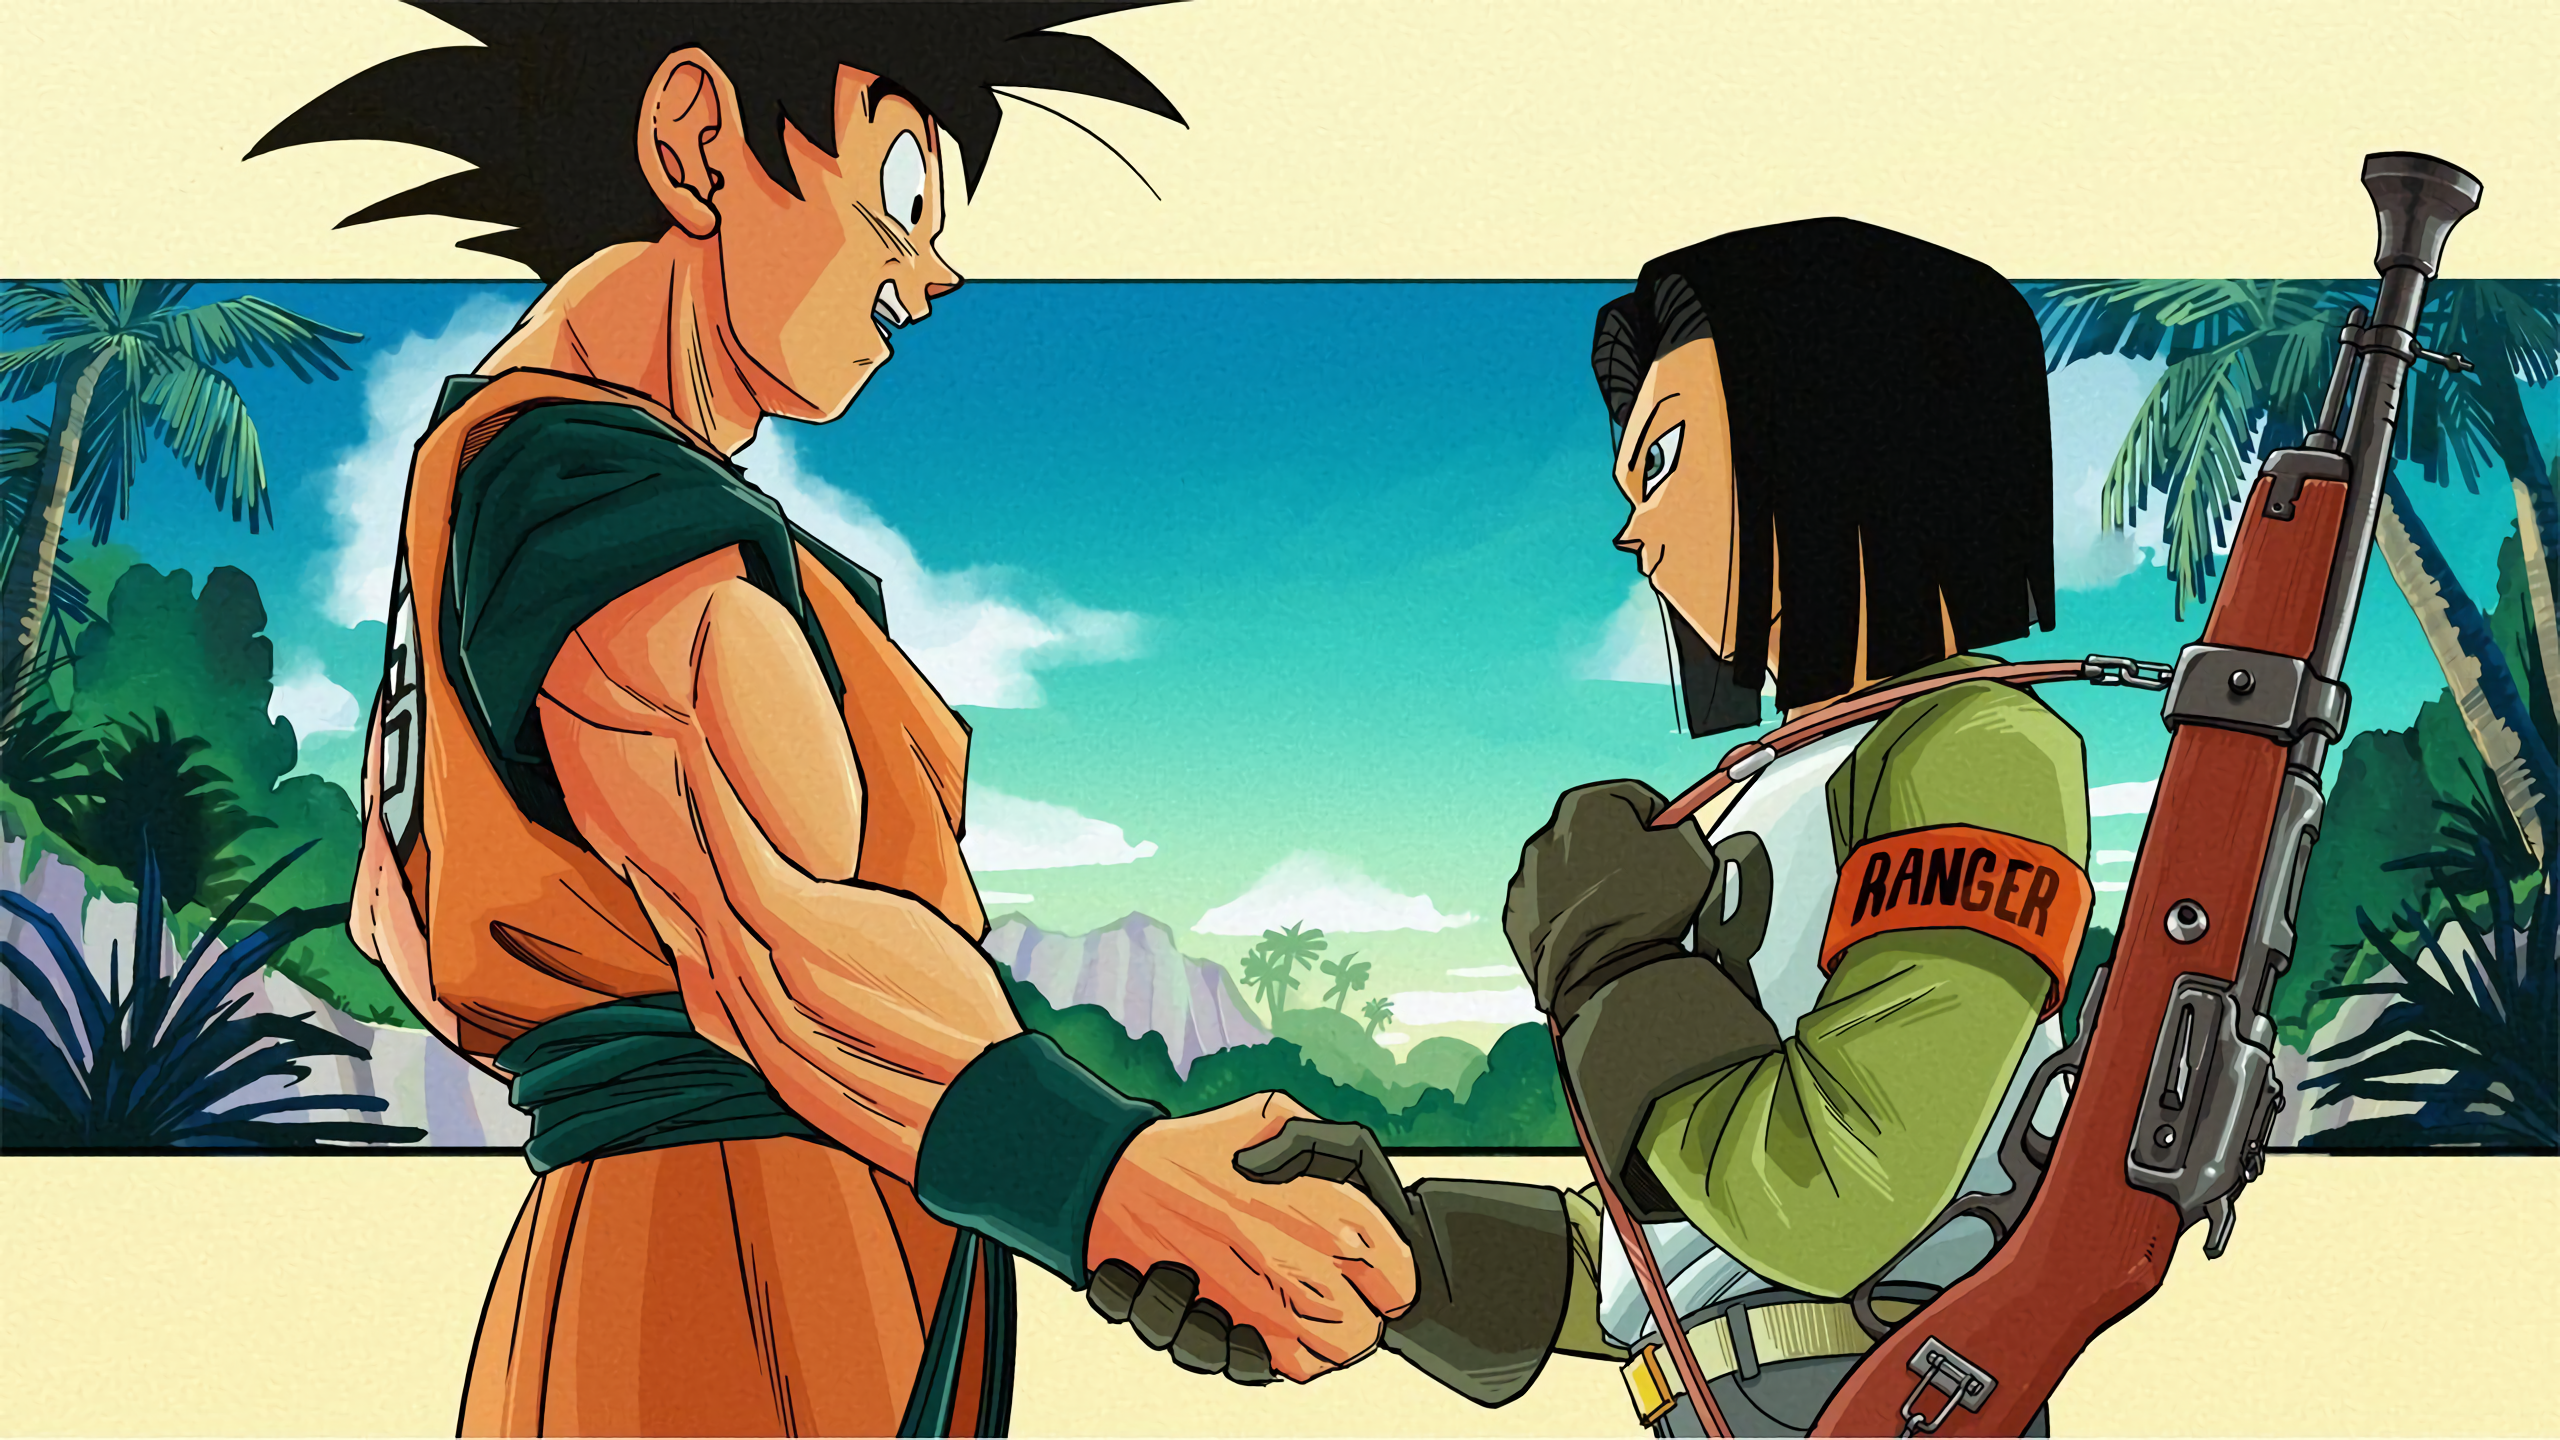 Android 17 Images Goku And Android 17 Handshake Hd Wallpaper And